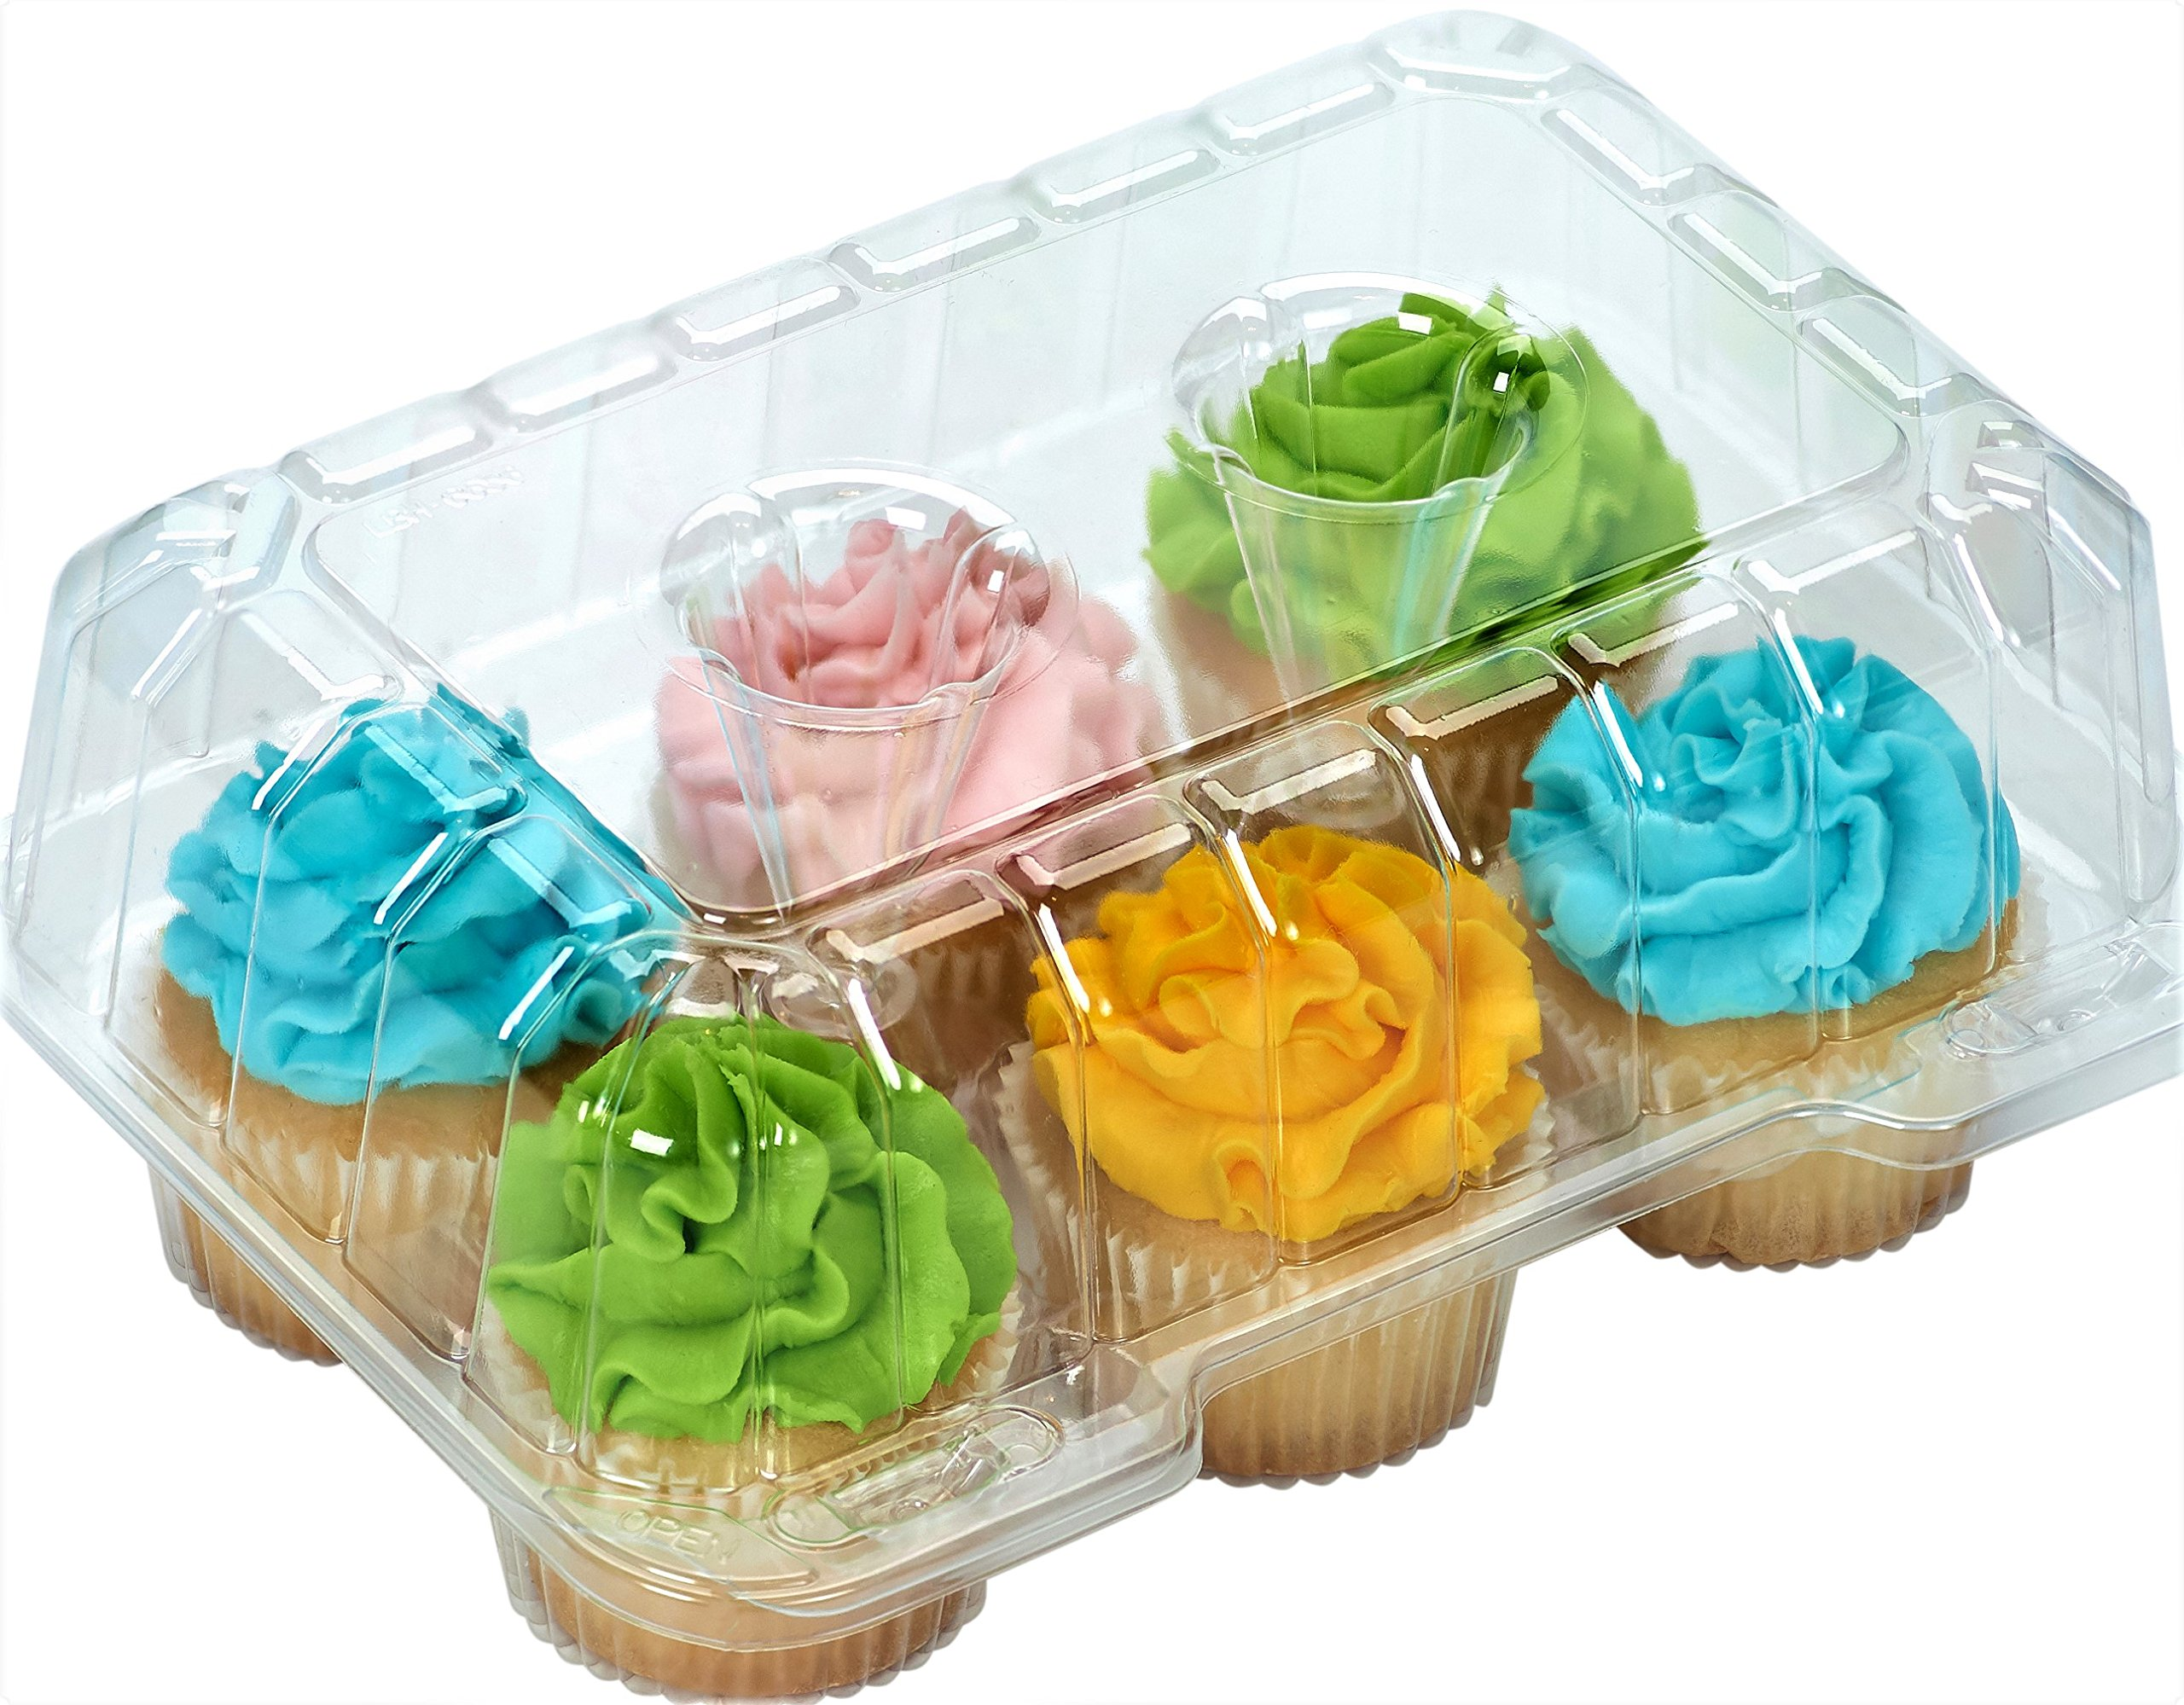 Clear Cupcake Boxes 4'' High for high toppinges- Holds 6 Cupcakes Each- 12/Pack